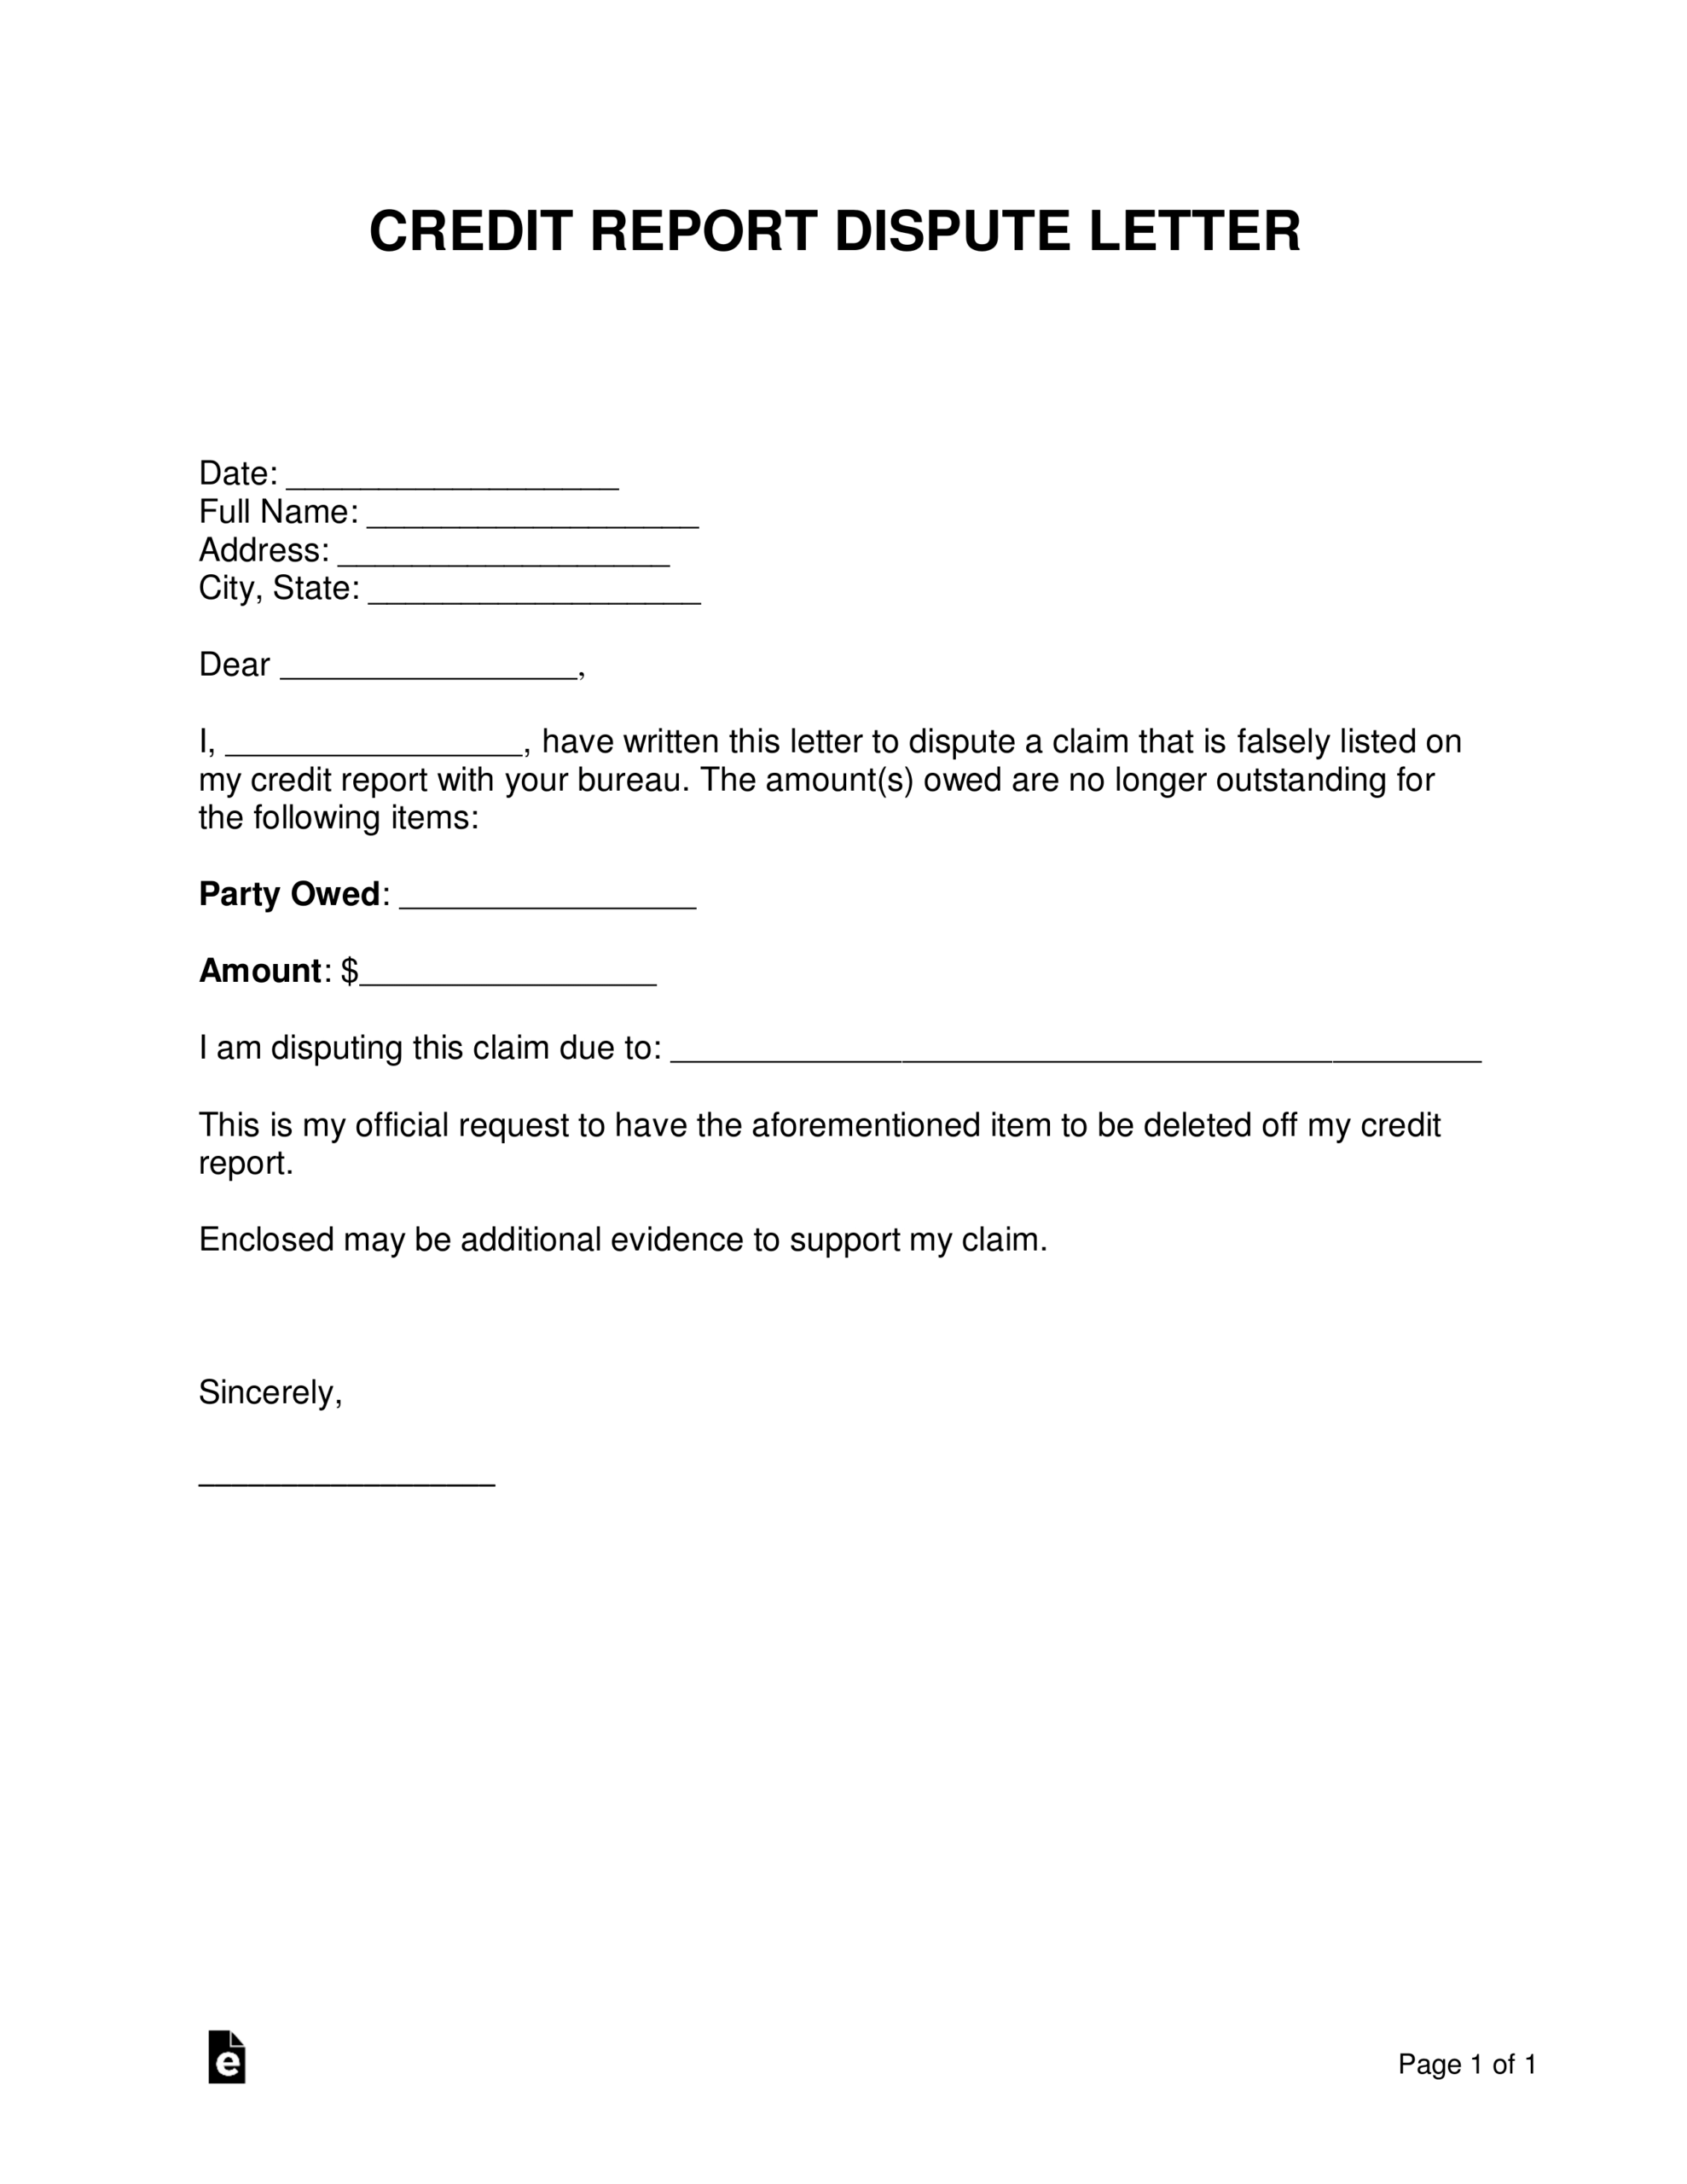 Free Credit Report Dispute Letter Template - Sample - Word Regarding 609 Letter Template Free